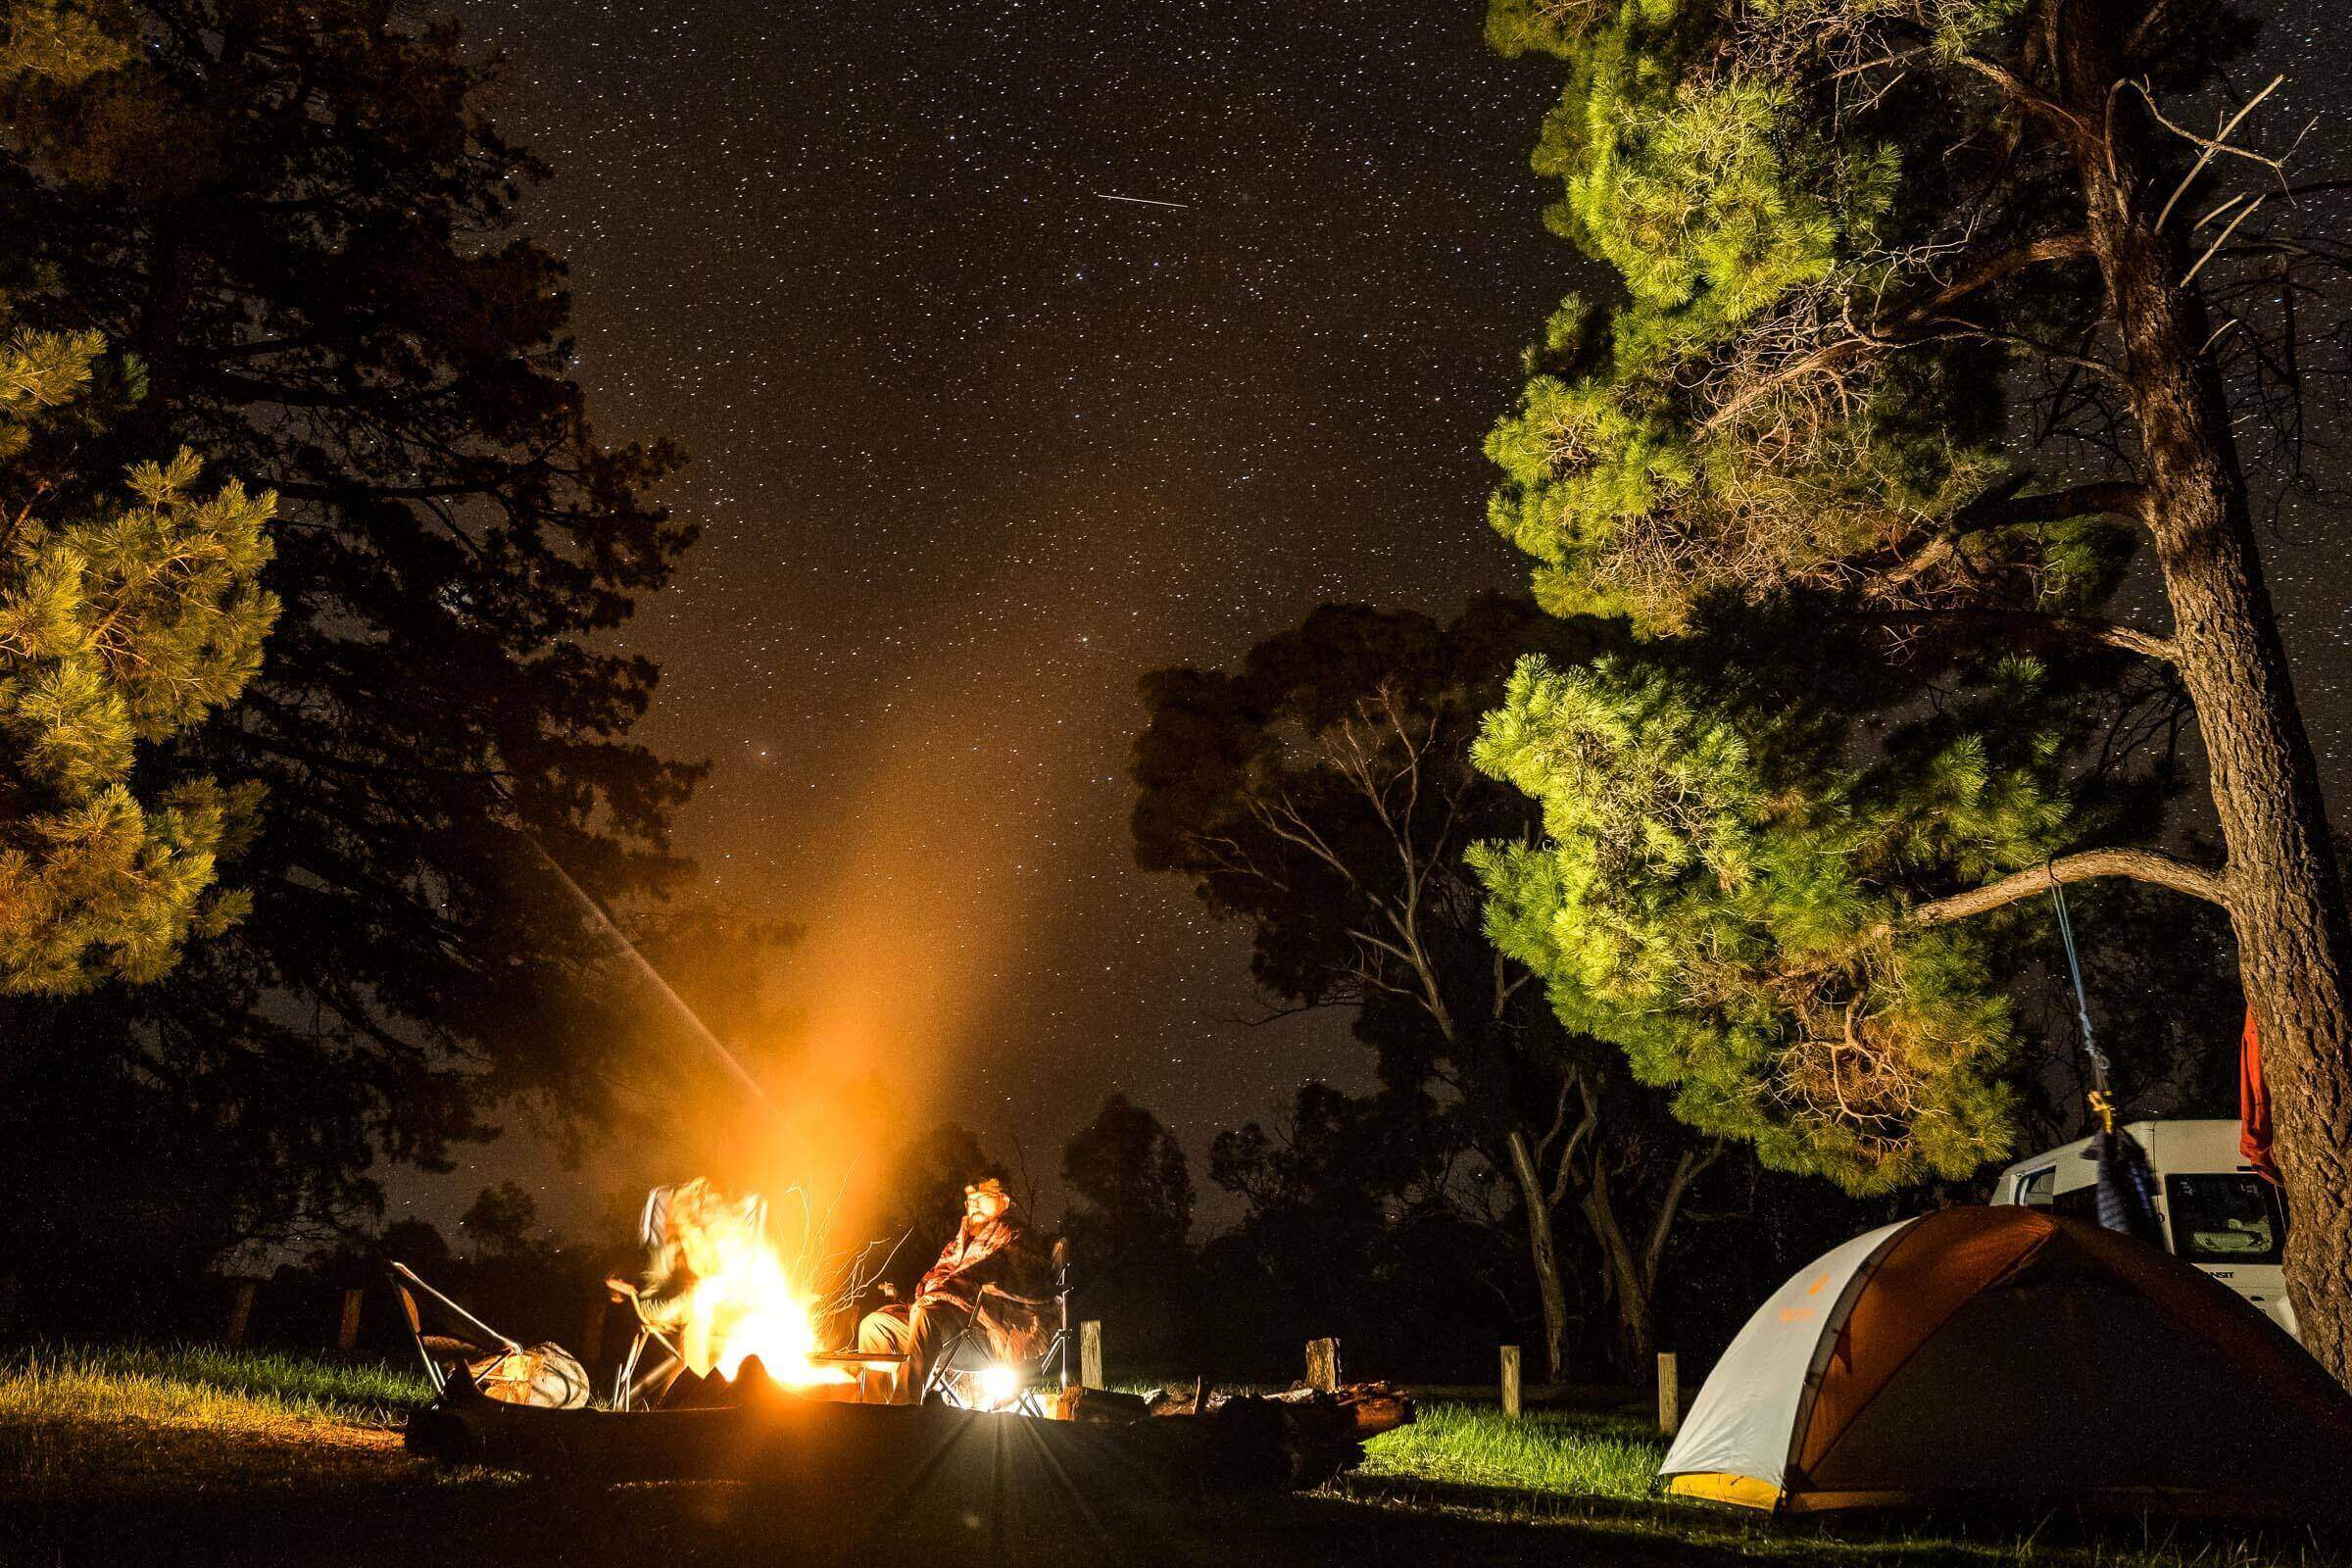 Camping under the stars at Mount Arapiles, Victoria